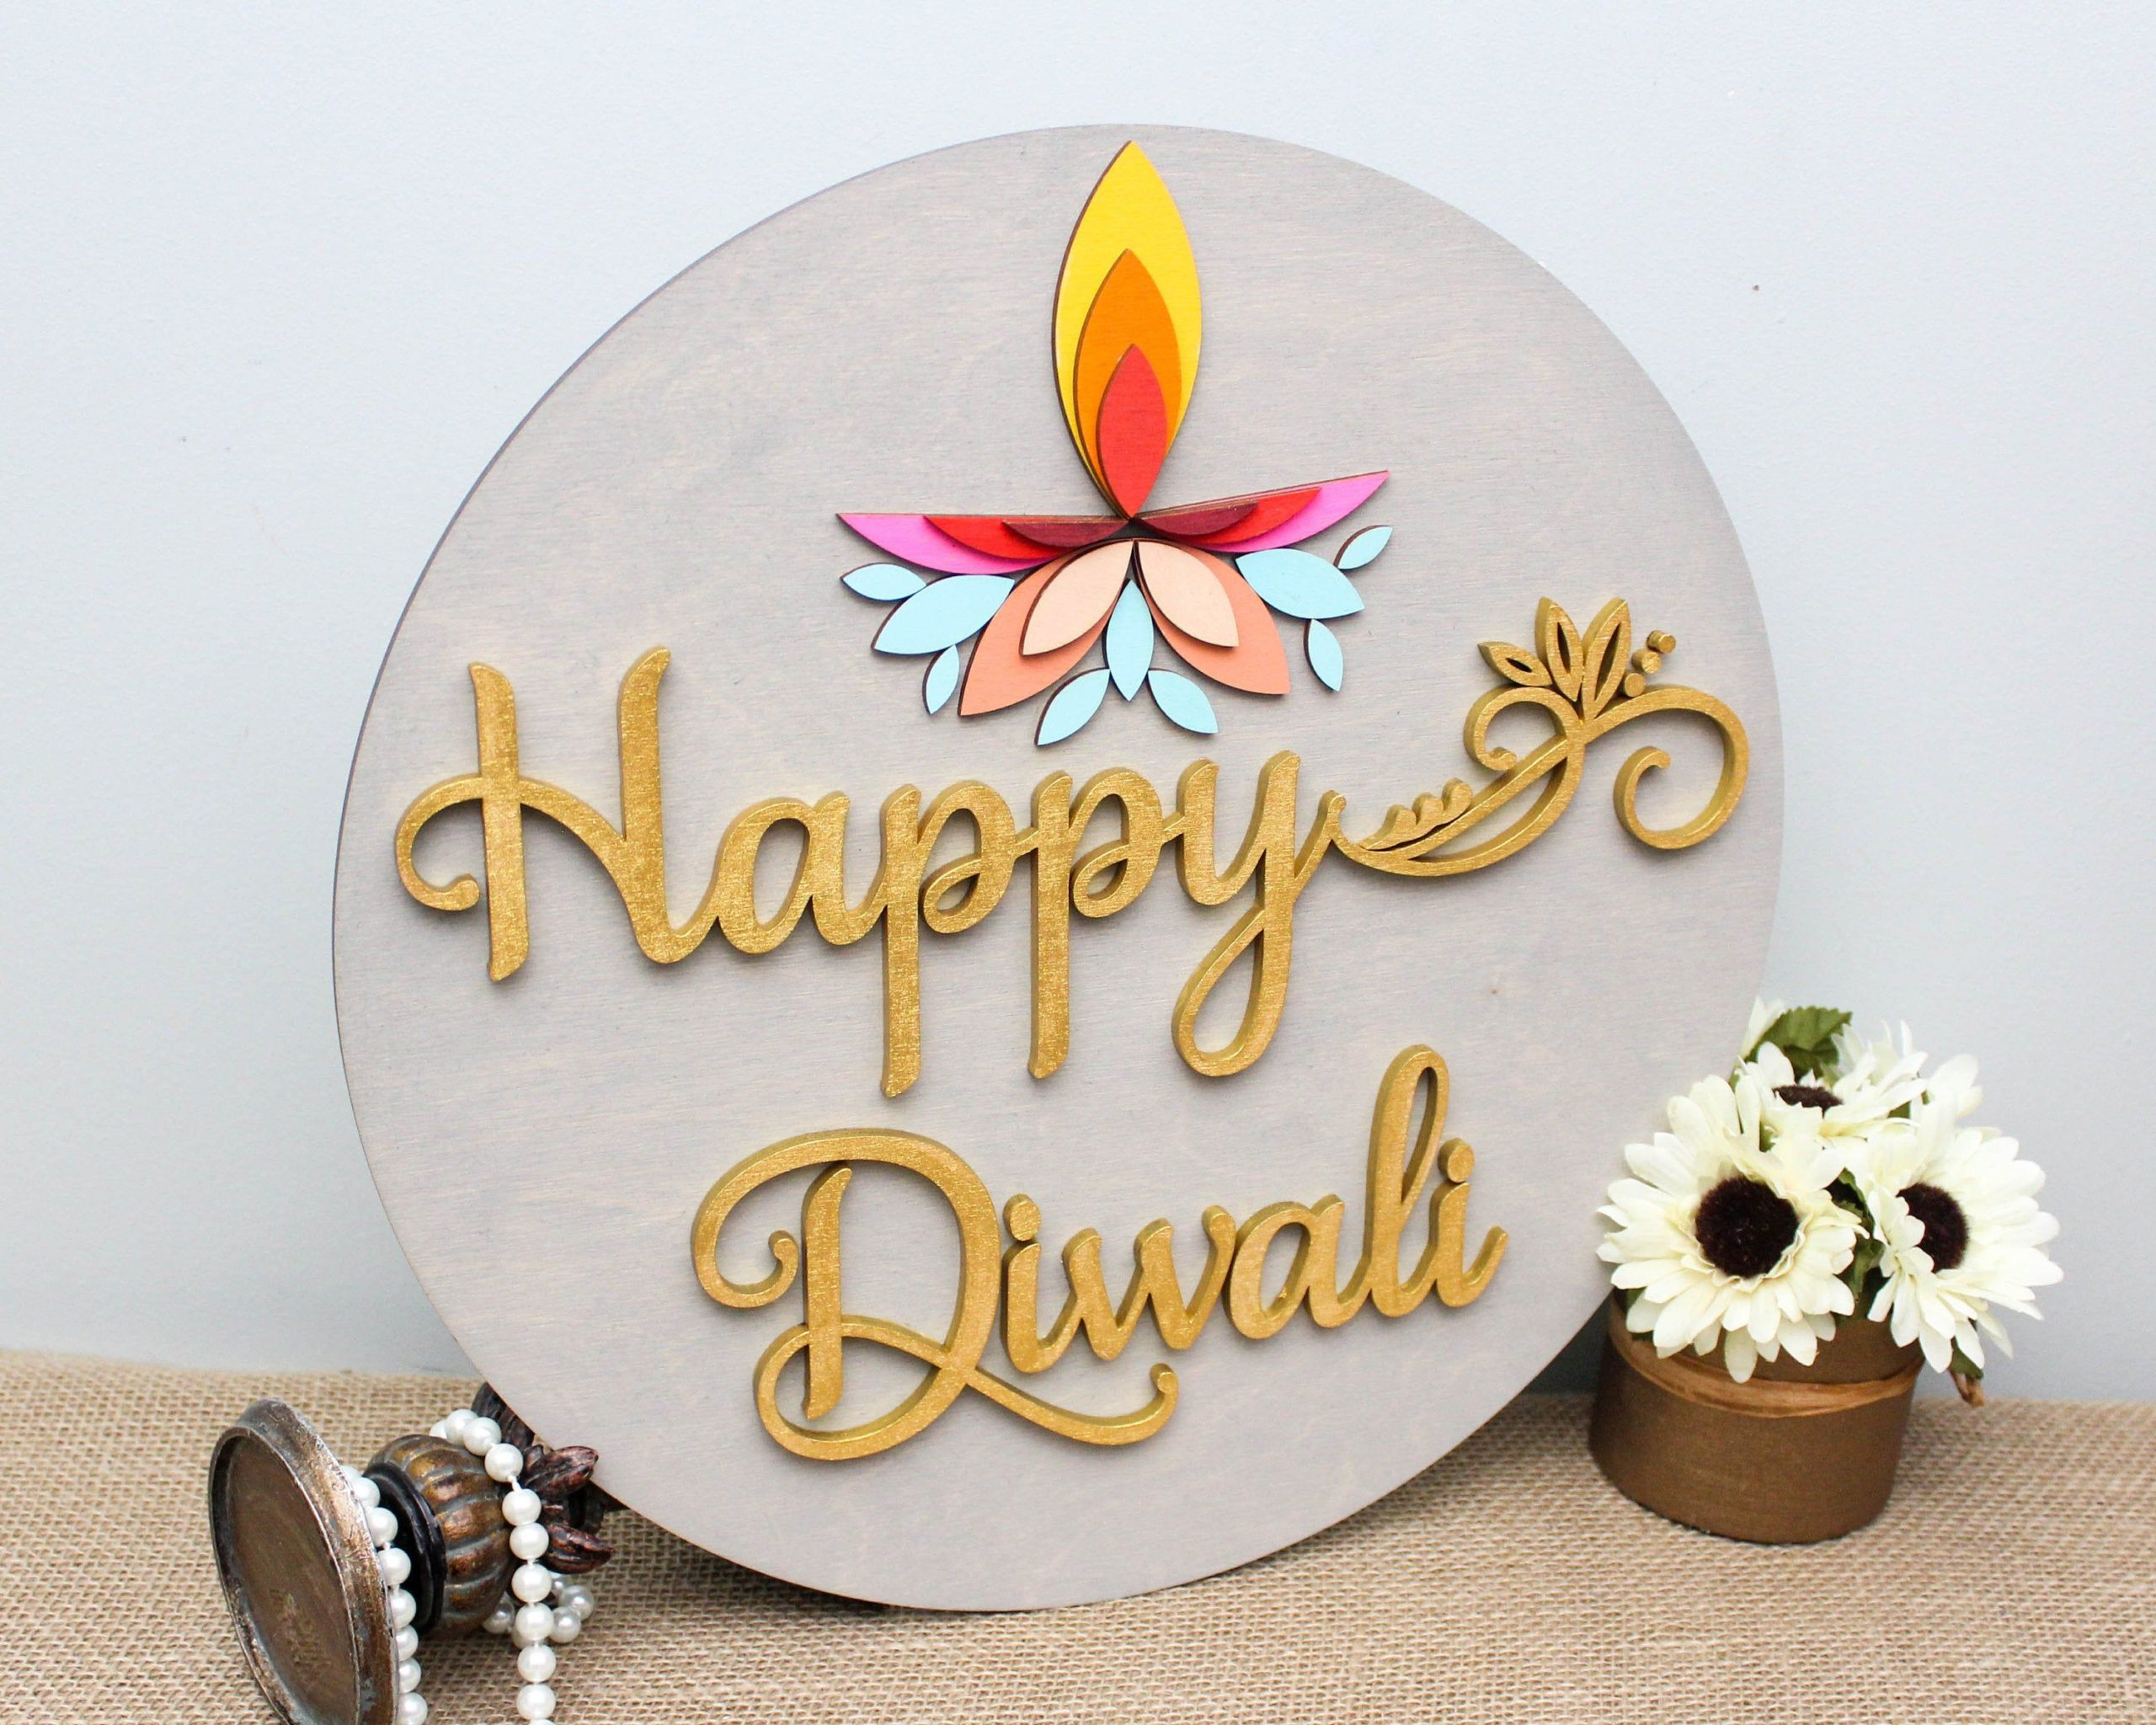 Happy Diwali 2020 Images   Best Pictures, Wallpapers &Amp; Photos